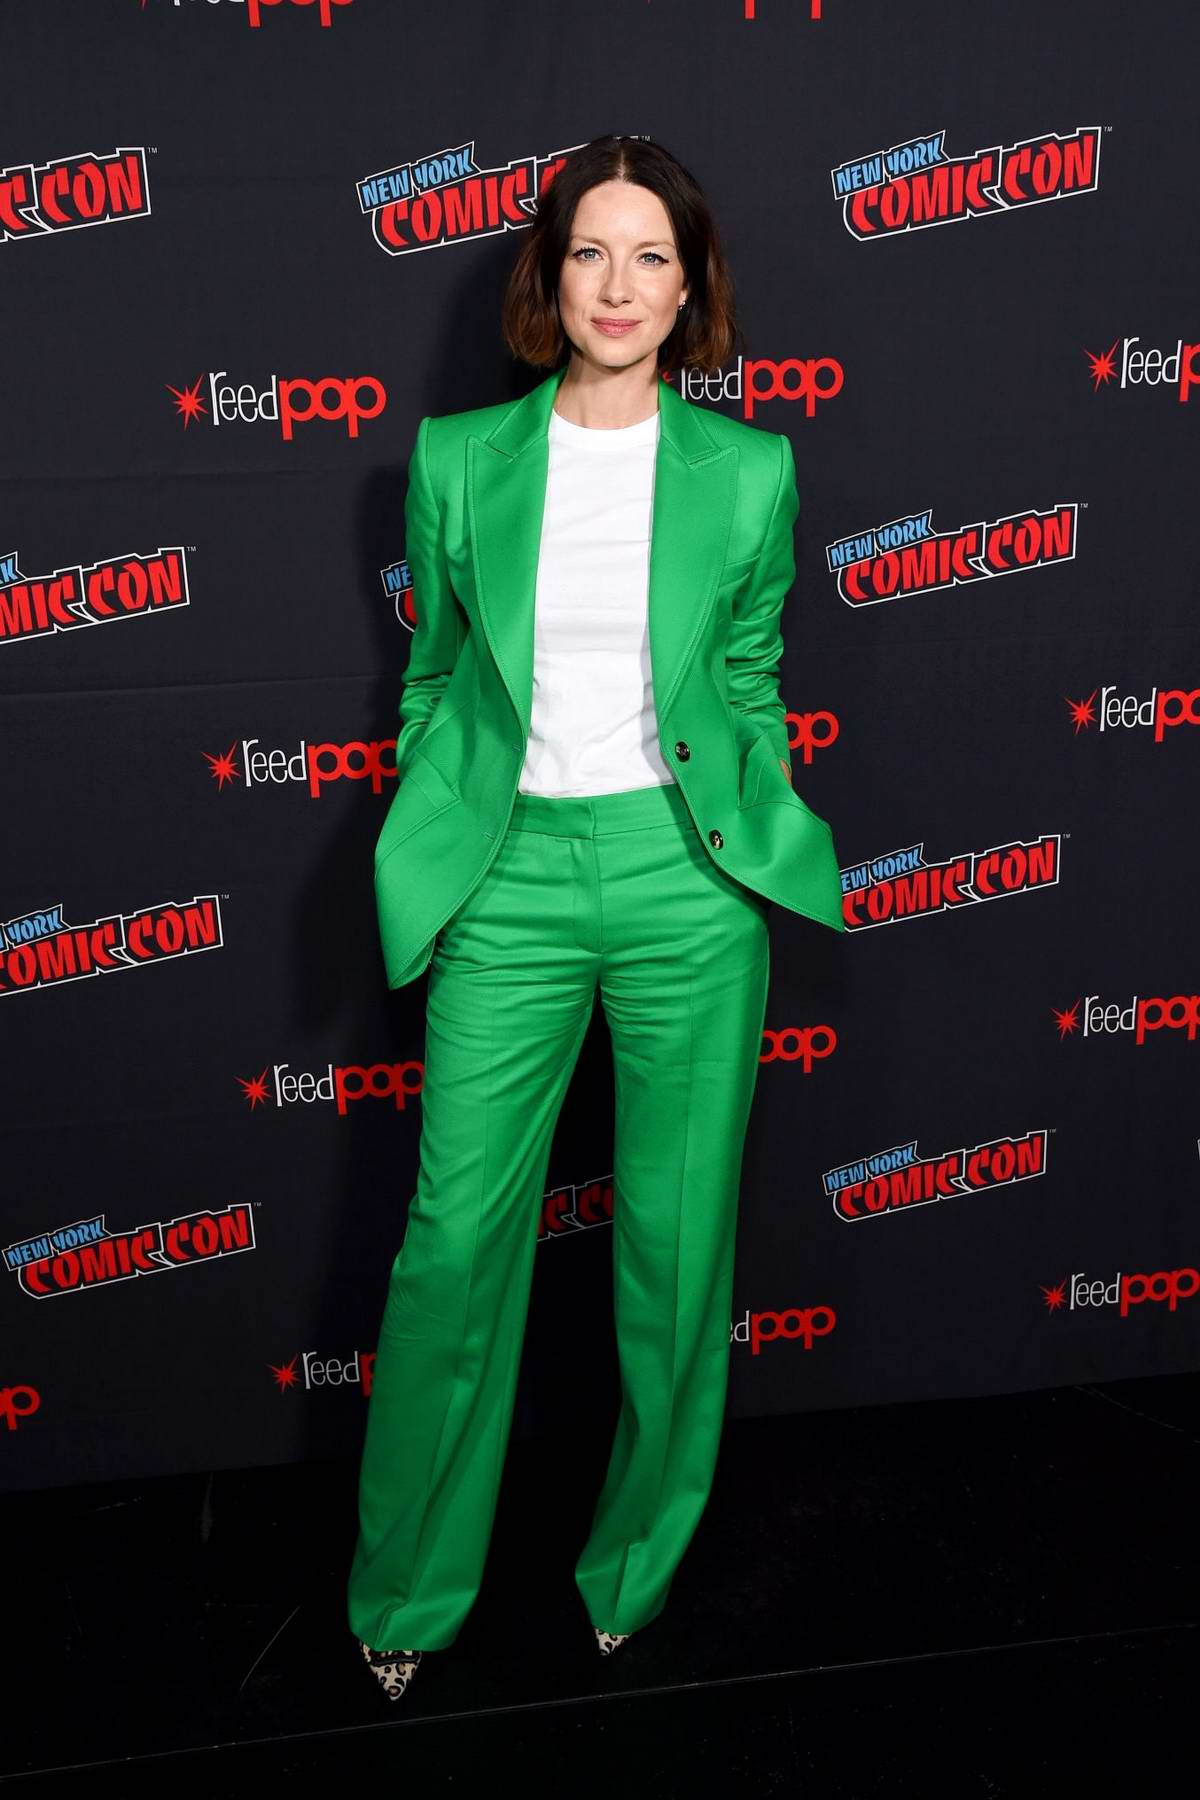 Caitriona Balfe attends Starz's 'Outlander' Panel during the 2019 New York Comic Con in New York City